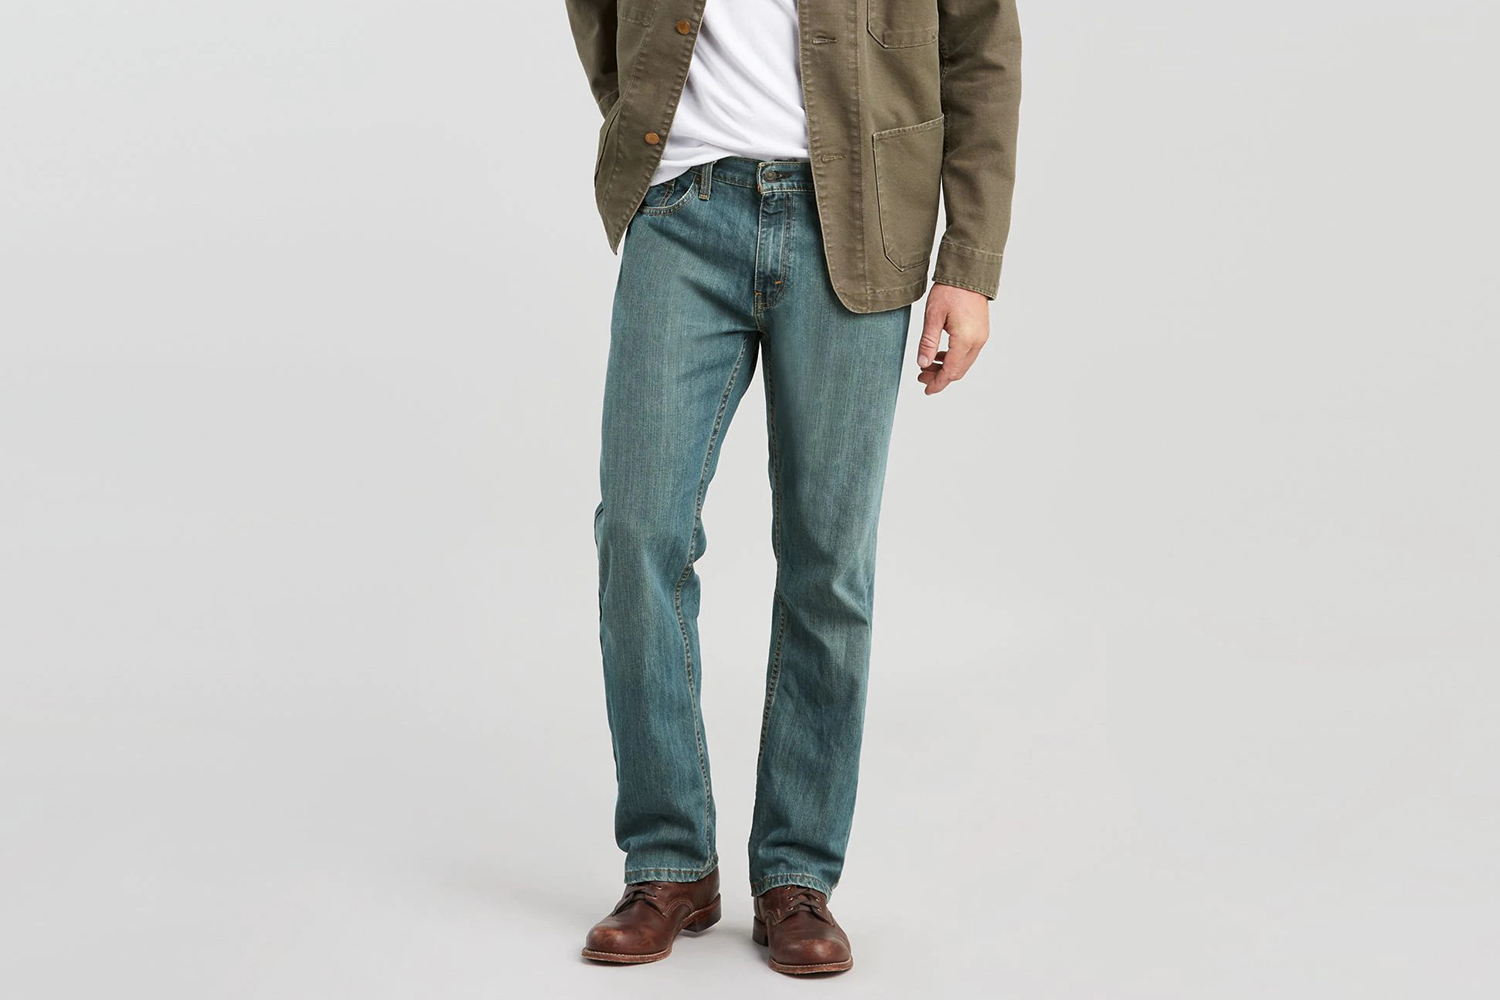 Levi's 559 Relaxed Straight Men's Jeans